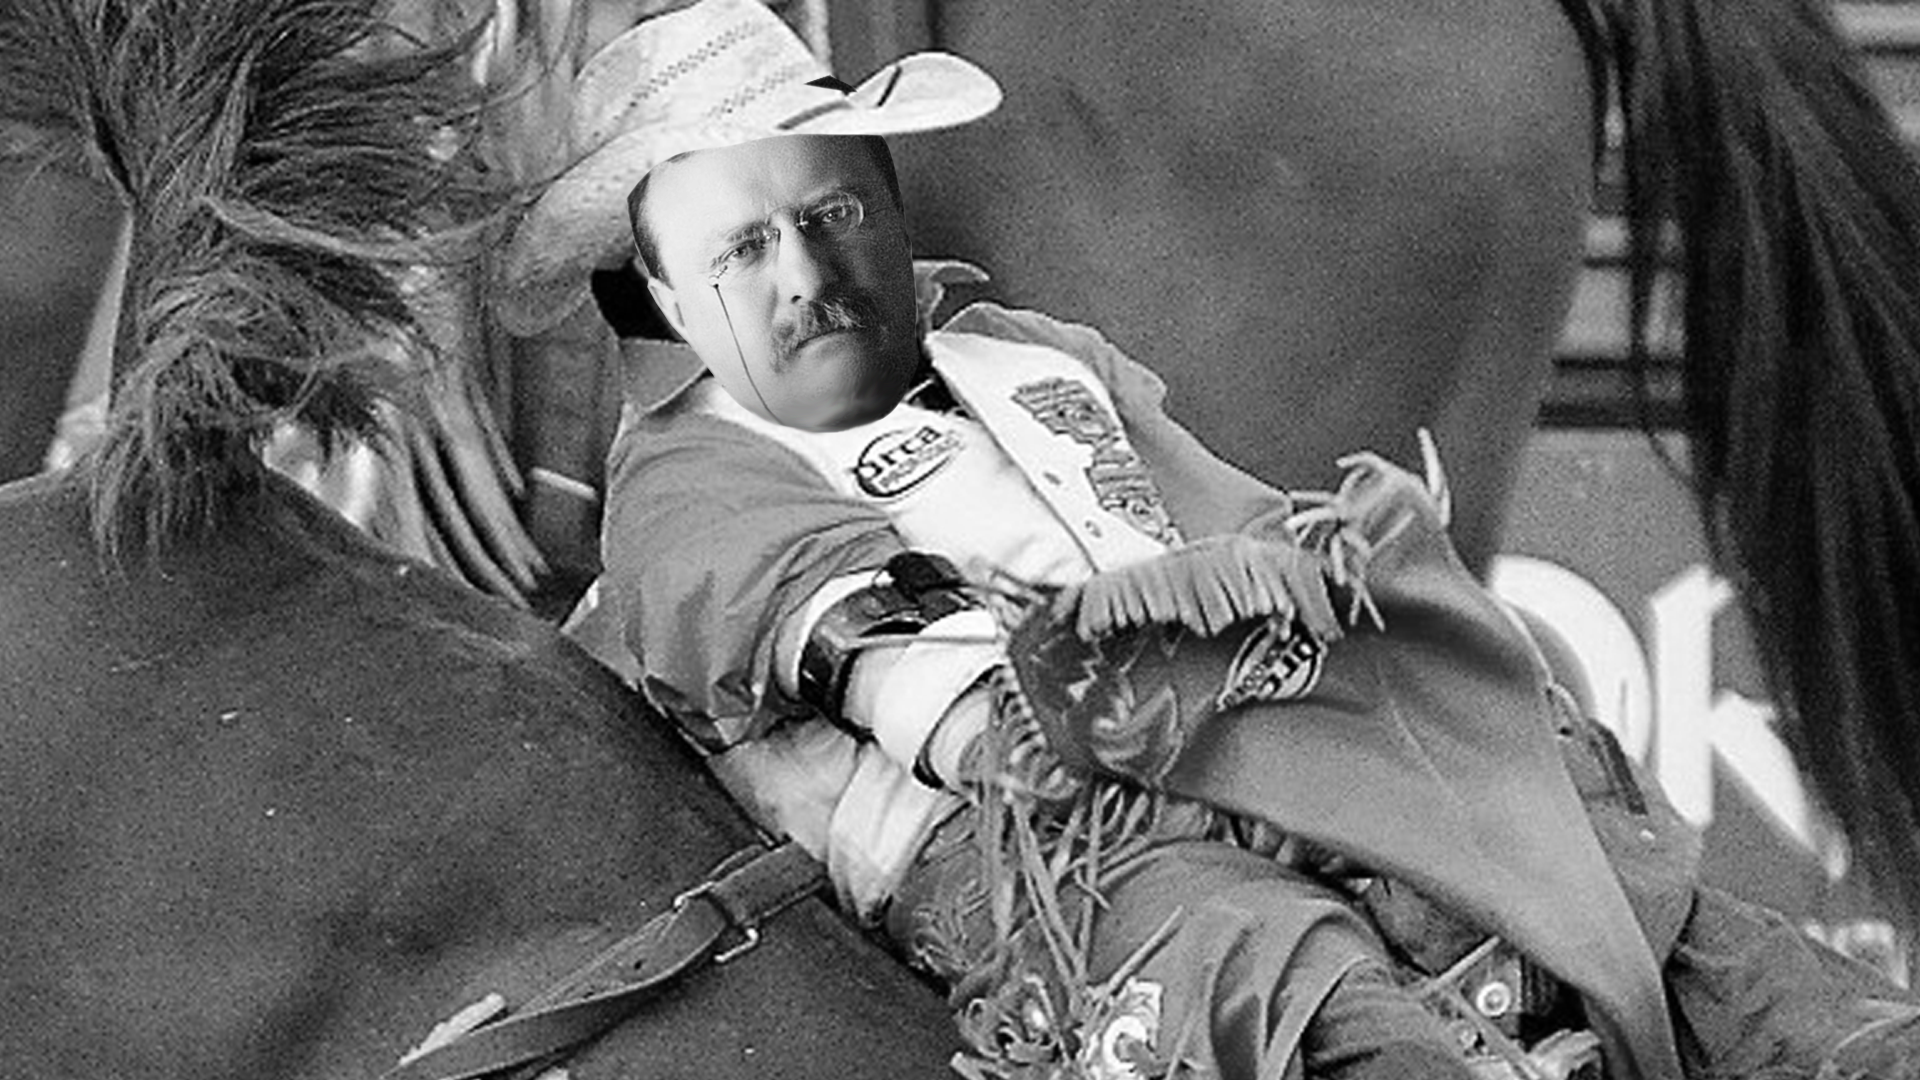 Teddy Roosevelt the Cowboy: After two sudden family deaths sent him spiraling into grief, President Roosevelt headed out to his ranch in the Dakota Territories. While there, he spent his days doing what cowboys in the 1880s did – hunting game, riding broncos and catching outlaws.  Source: http://www.whitehouse.gov/about/presidents/theodoreroosevelt